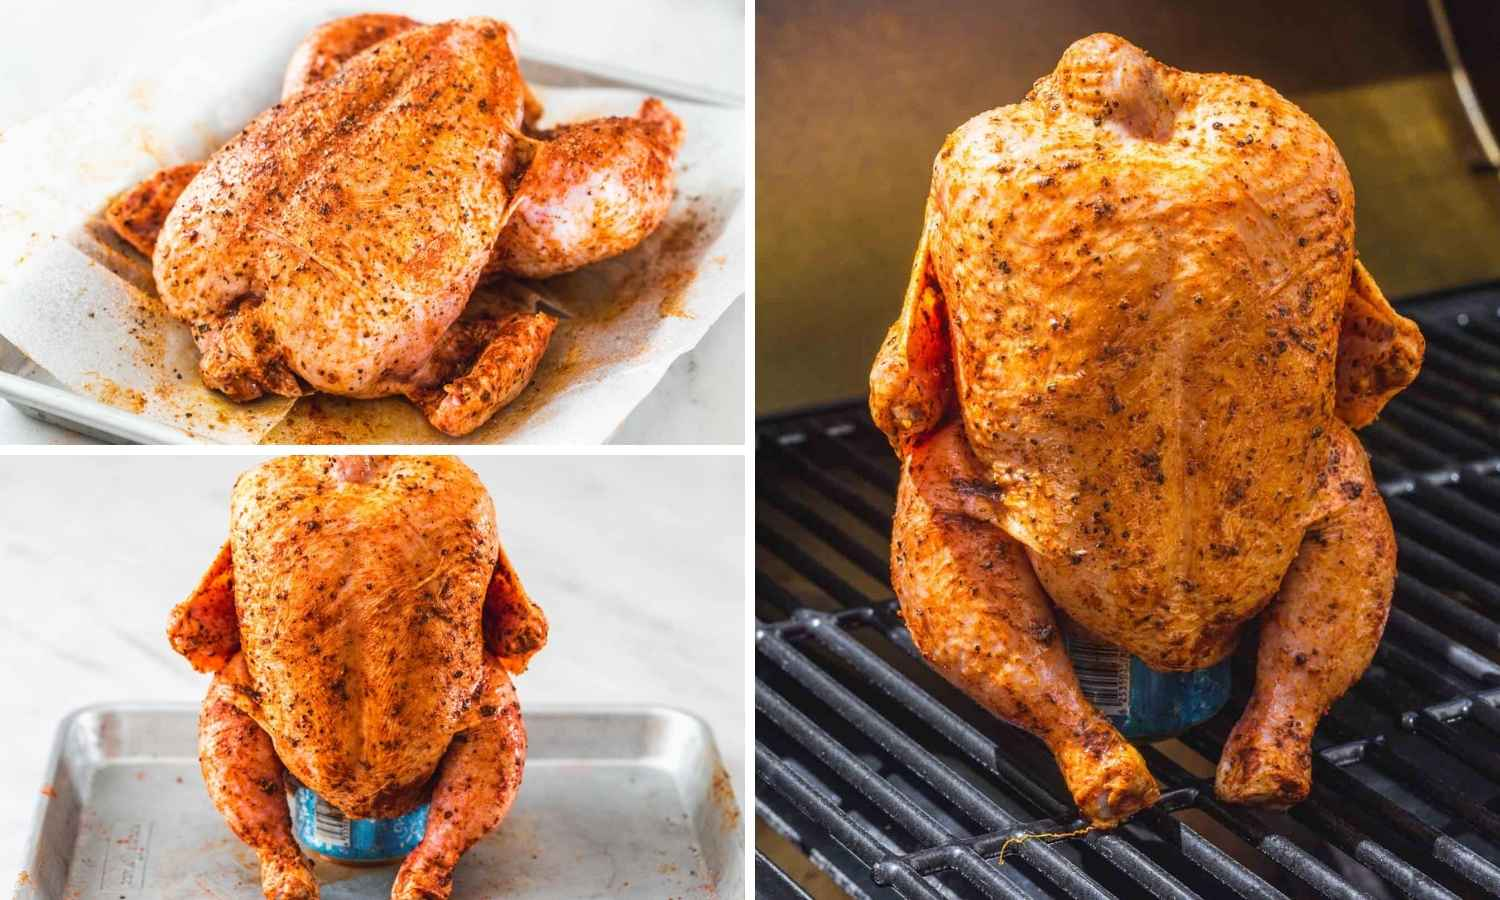 A collage with 3 images showing how to season a whole chicken, place it on a can of beer then put on the grill.